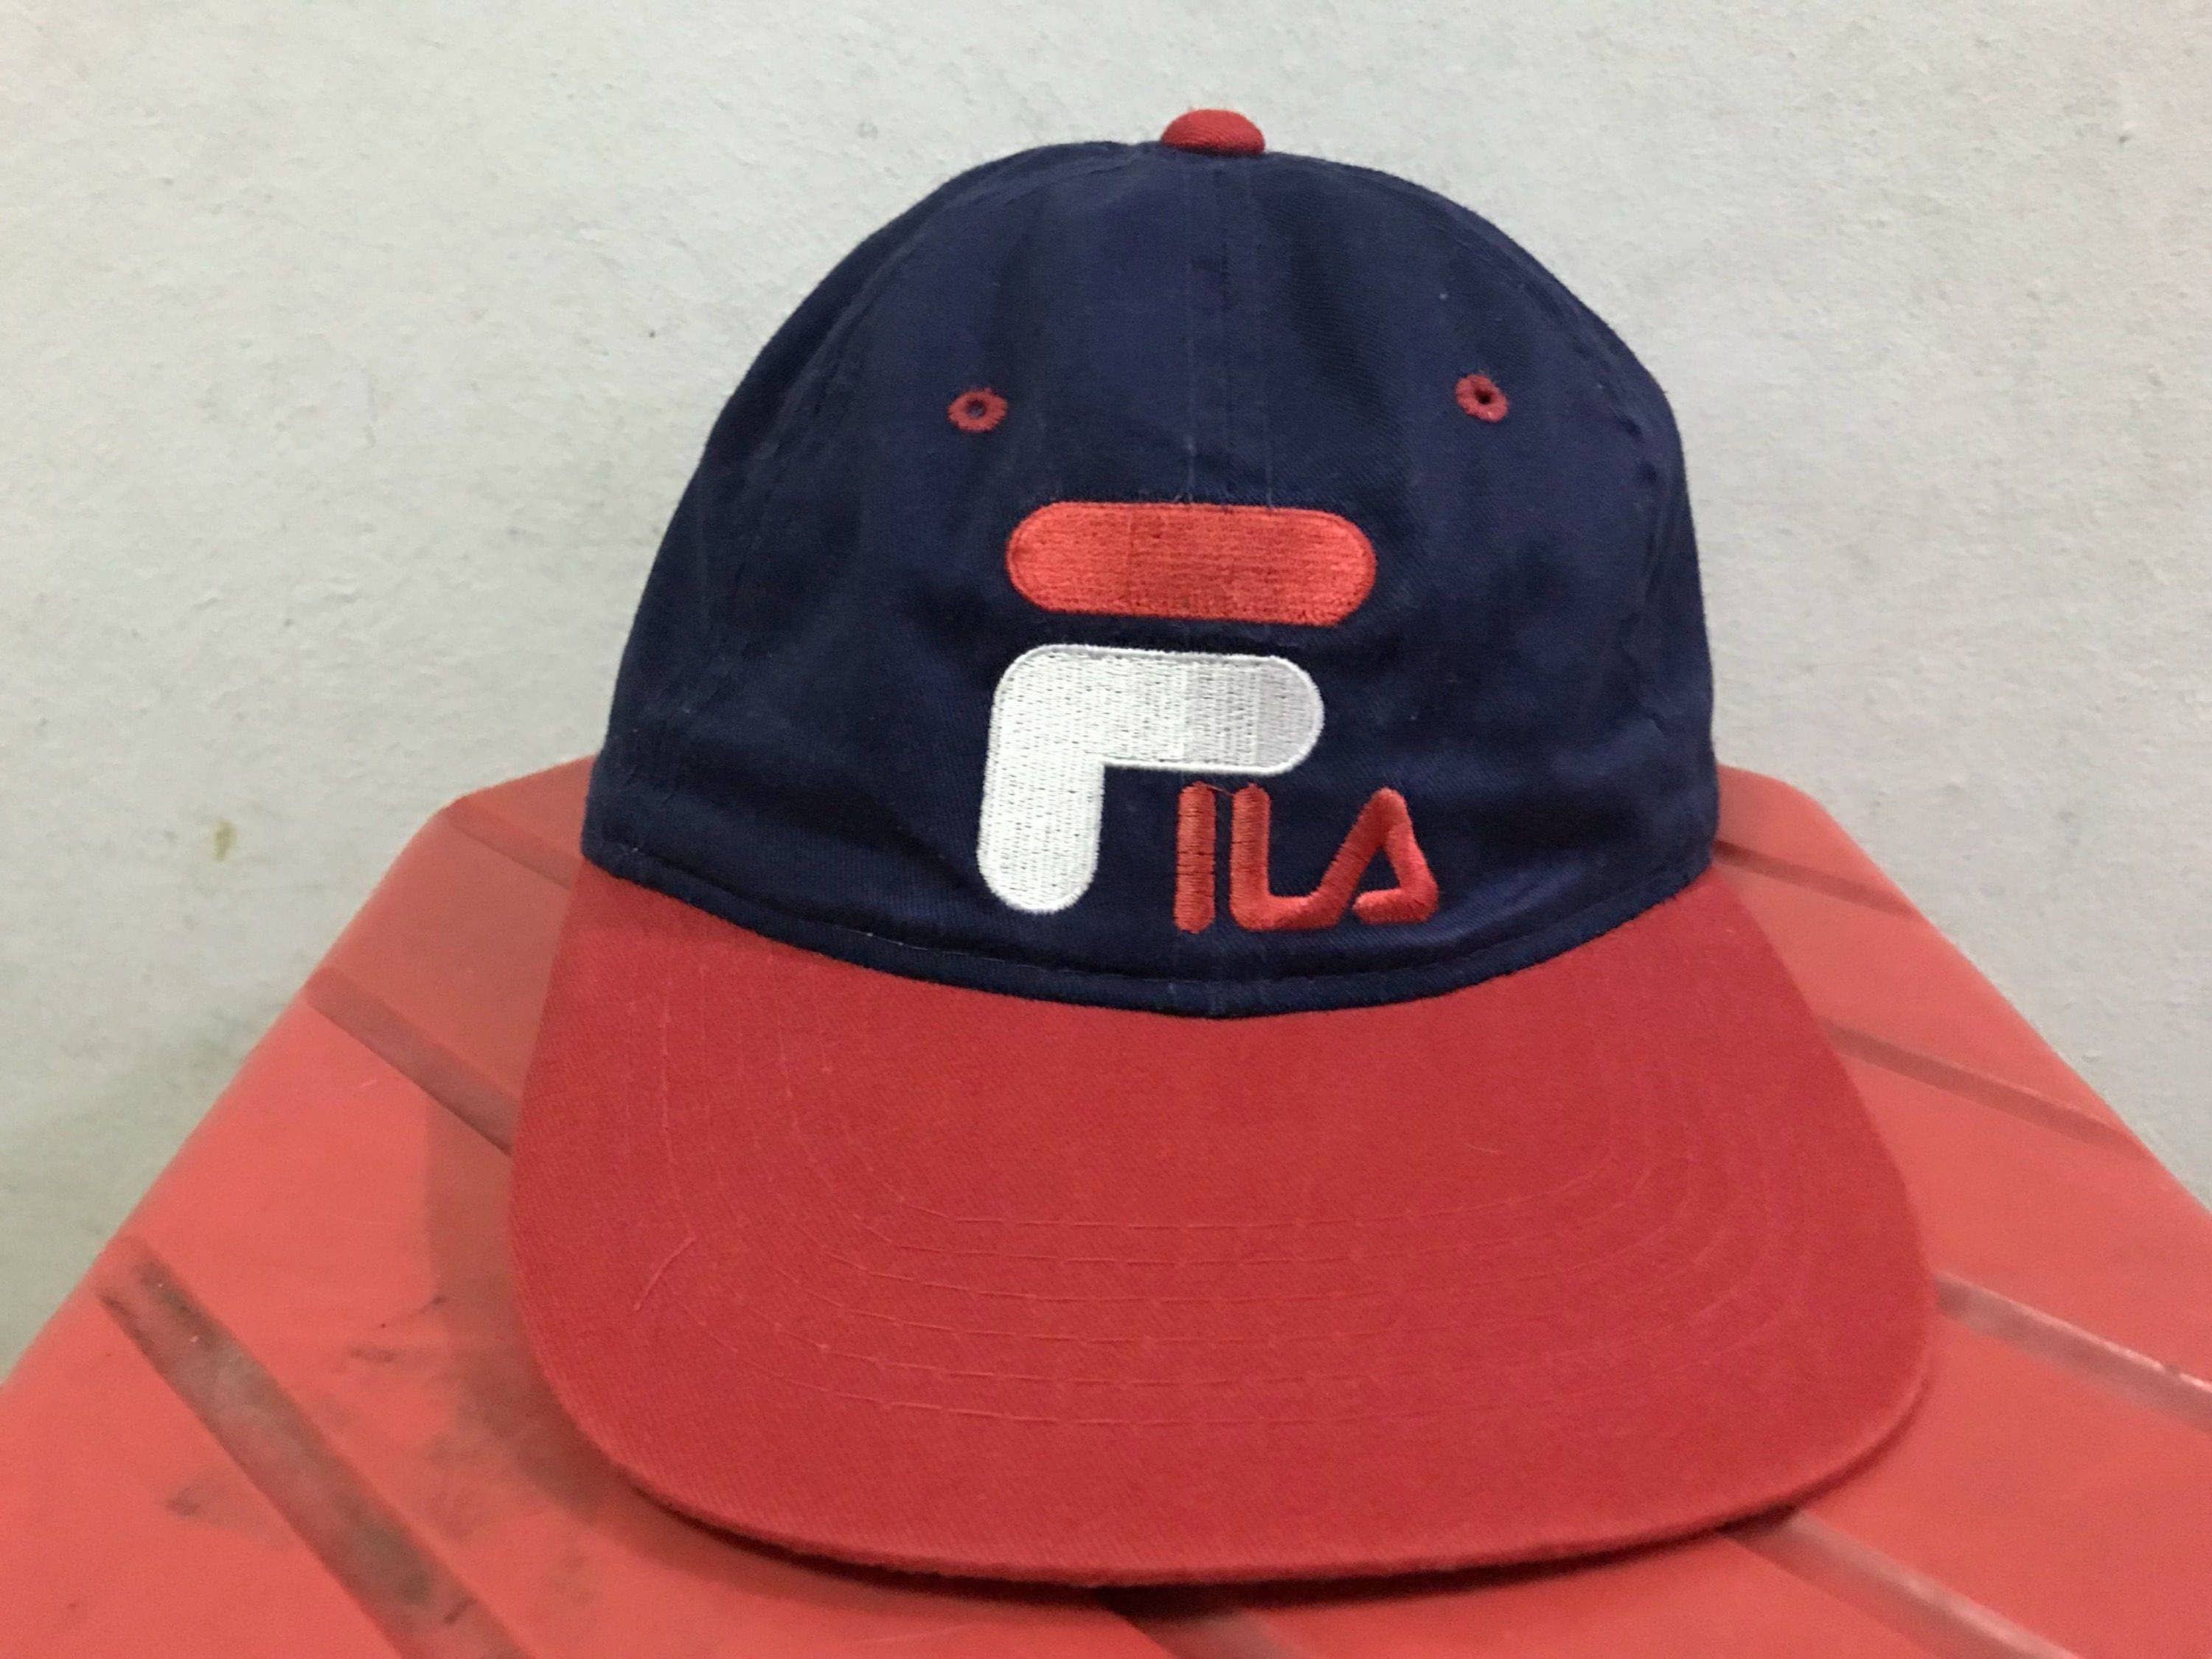 fila hat grey